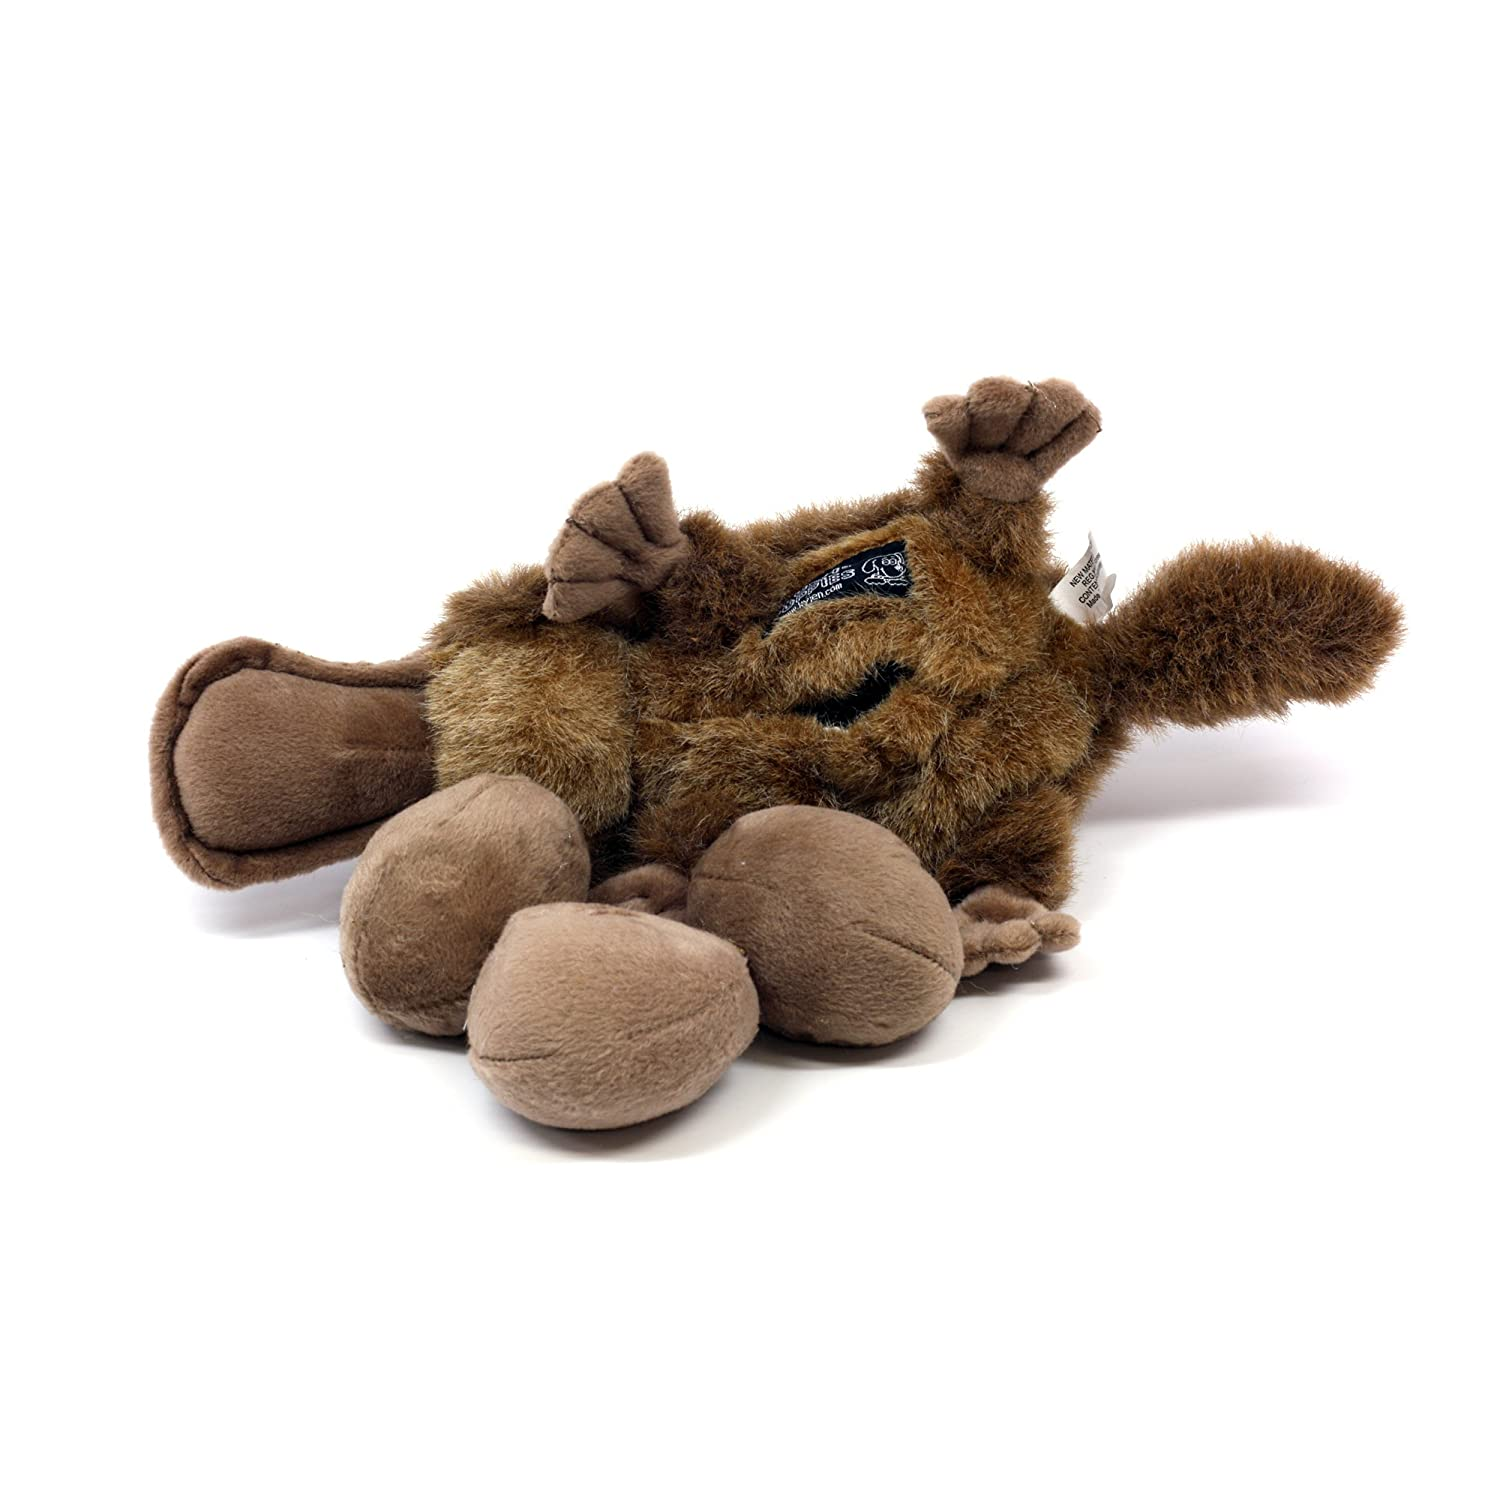 Outward Hound Kyjen Egg Babies Platypus Plush Dog Toys